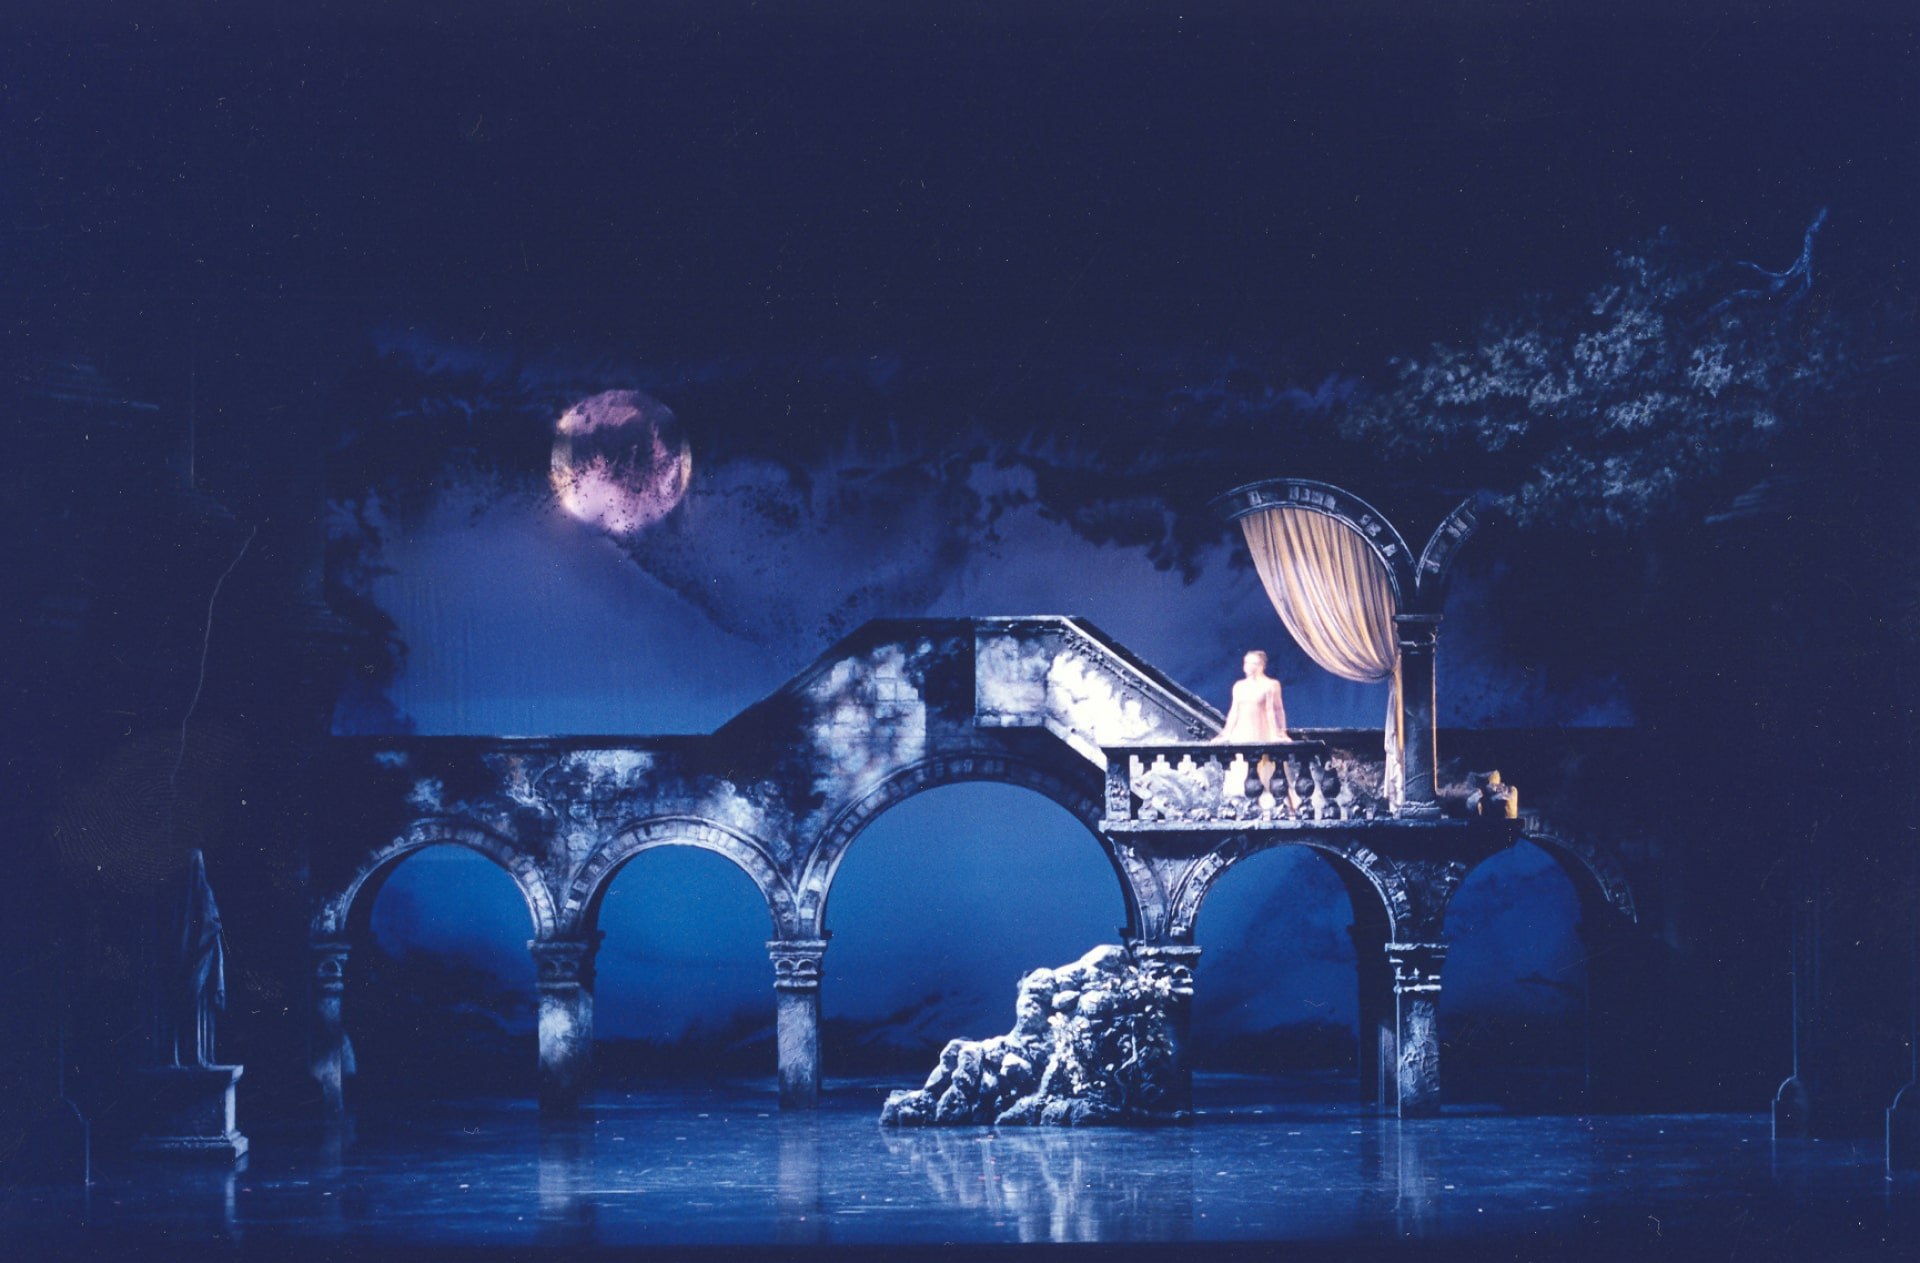 Ballerina in pale dress stands at balcony railing under swagged curtain against bridge and moonlit sky.